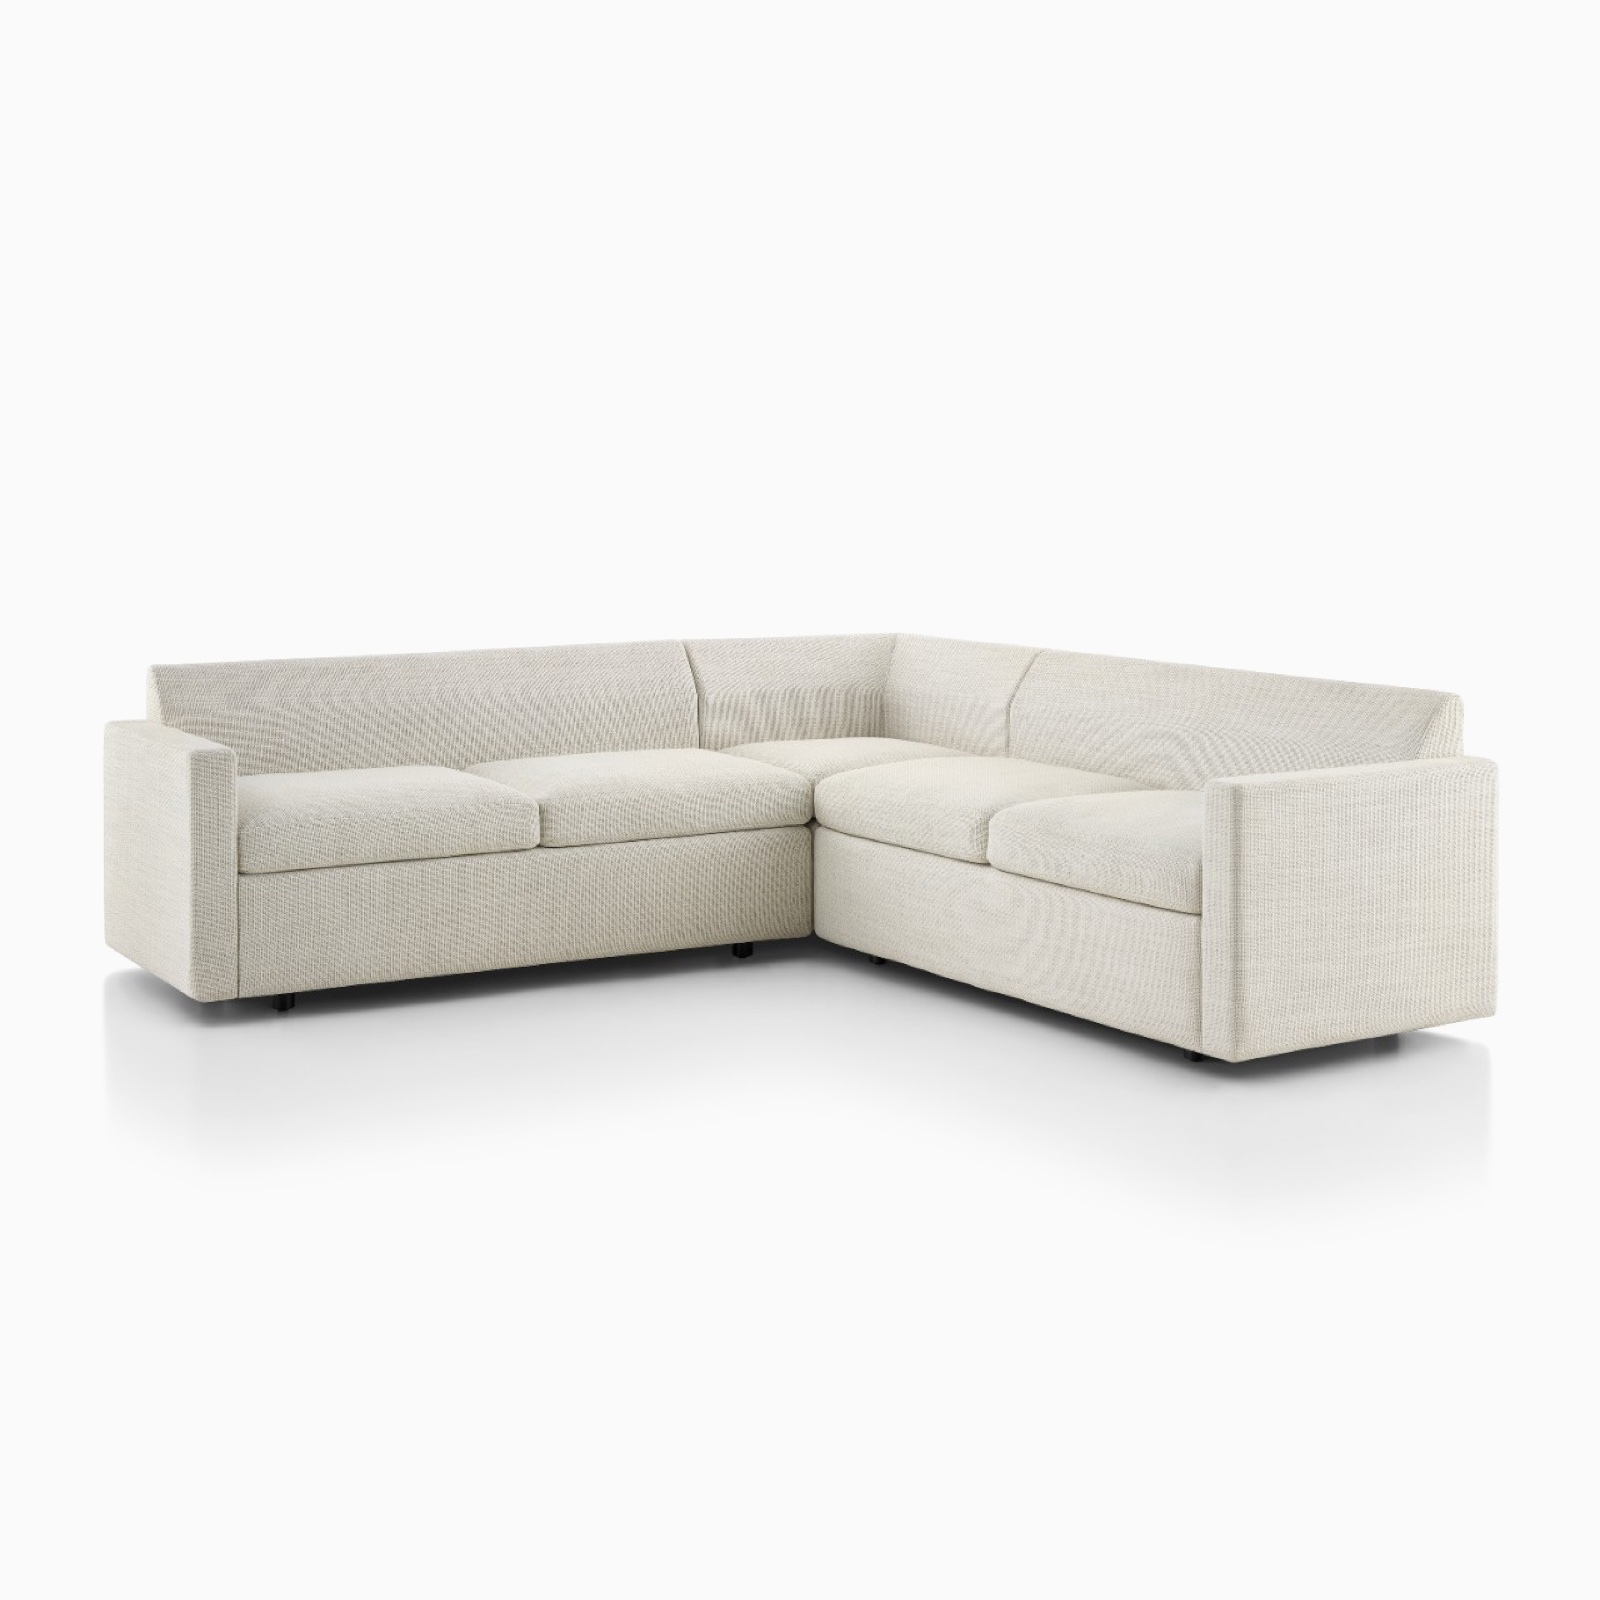 A Bevel Sectional in Capri Stone.